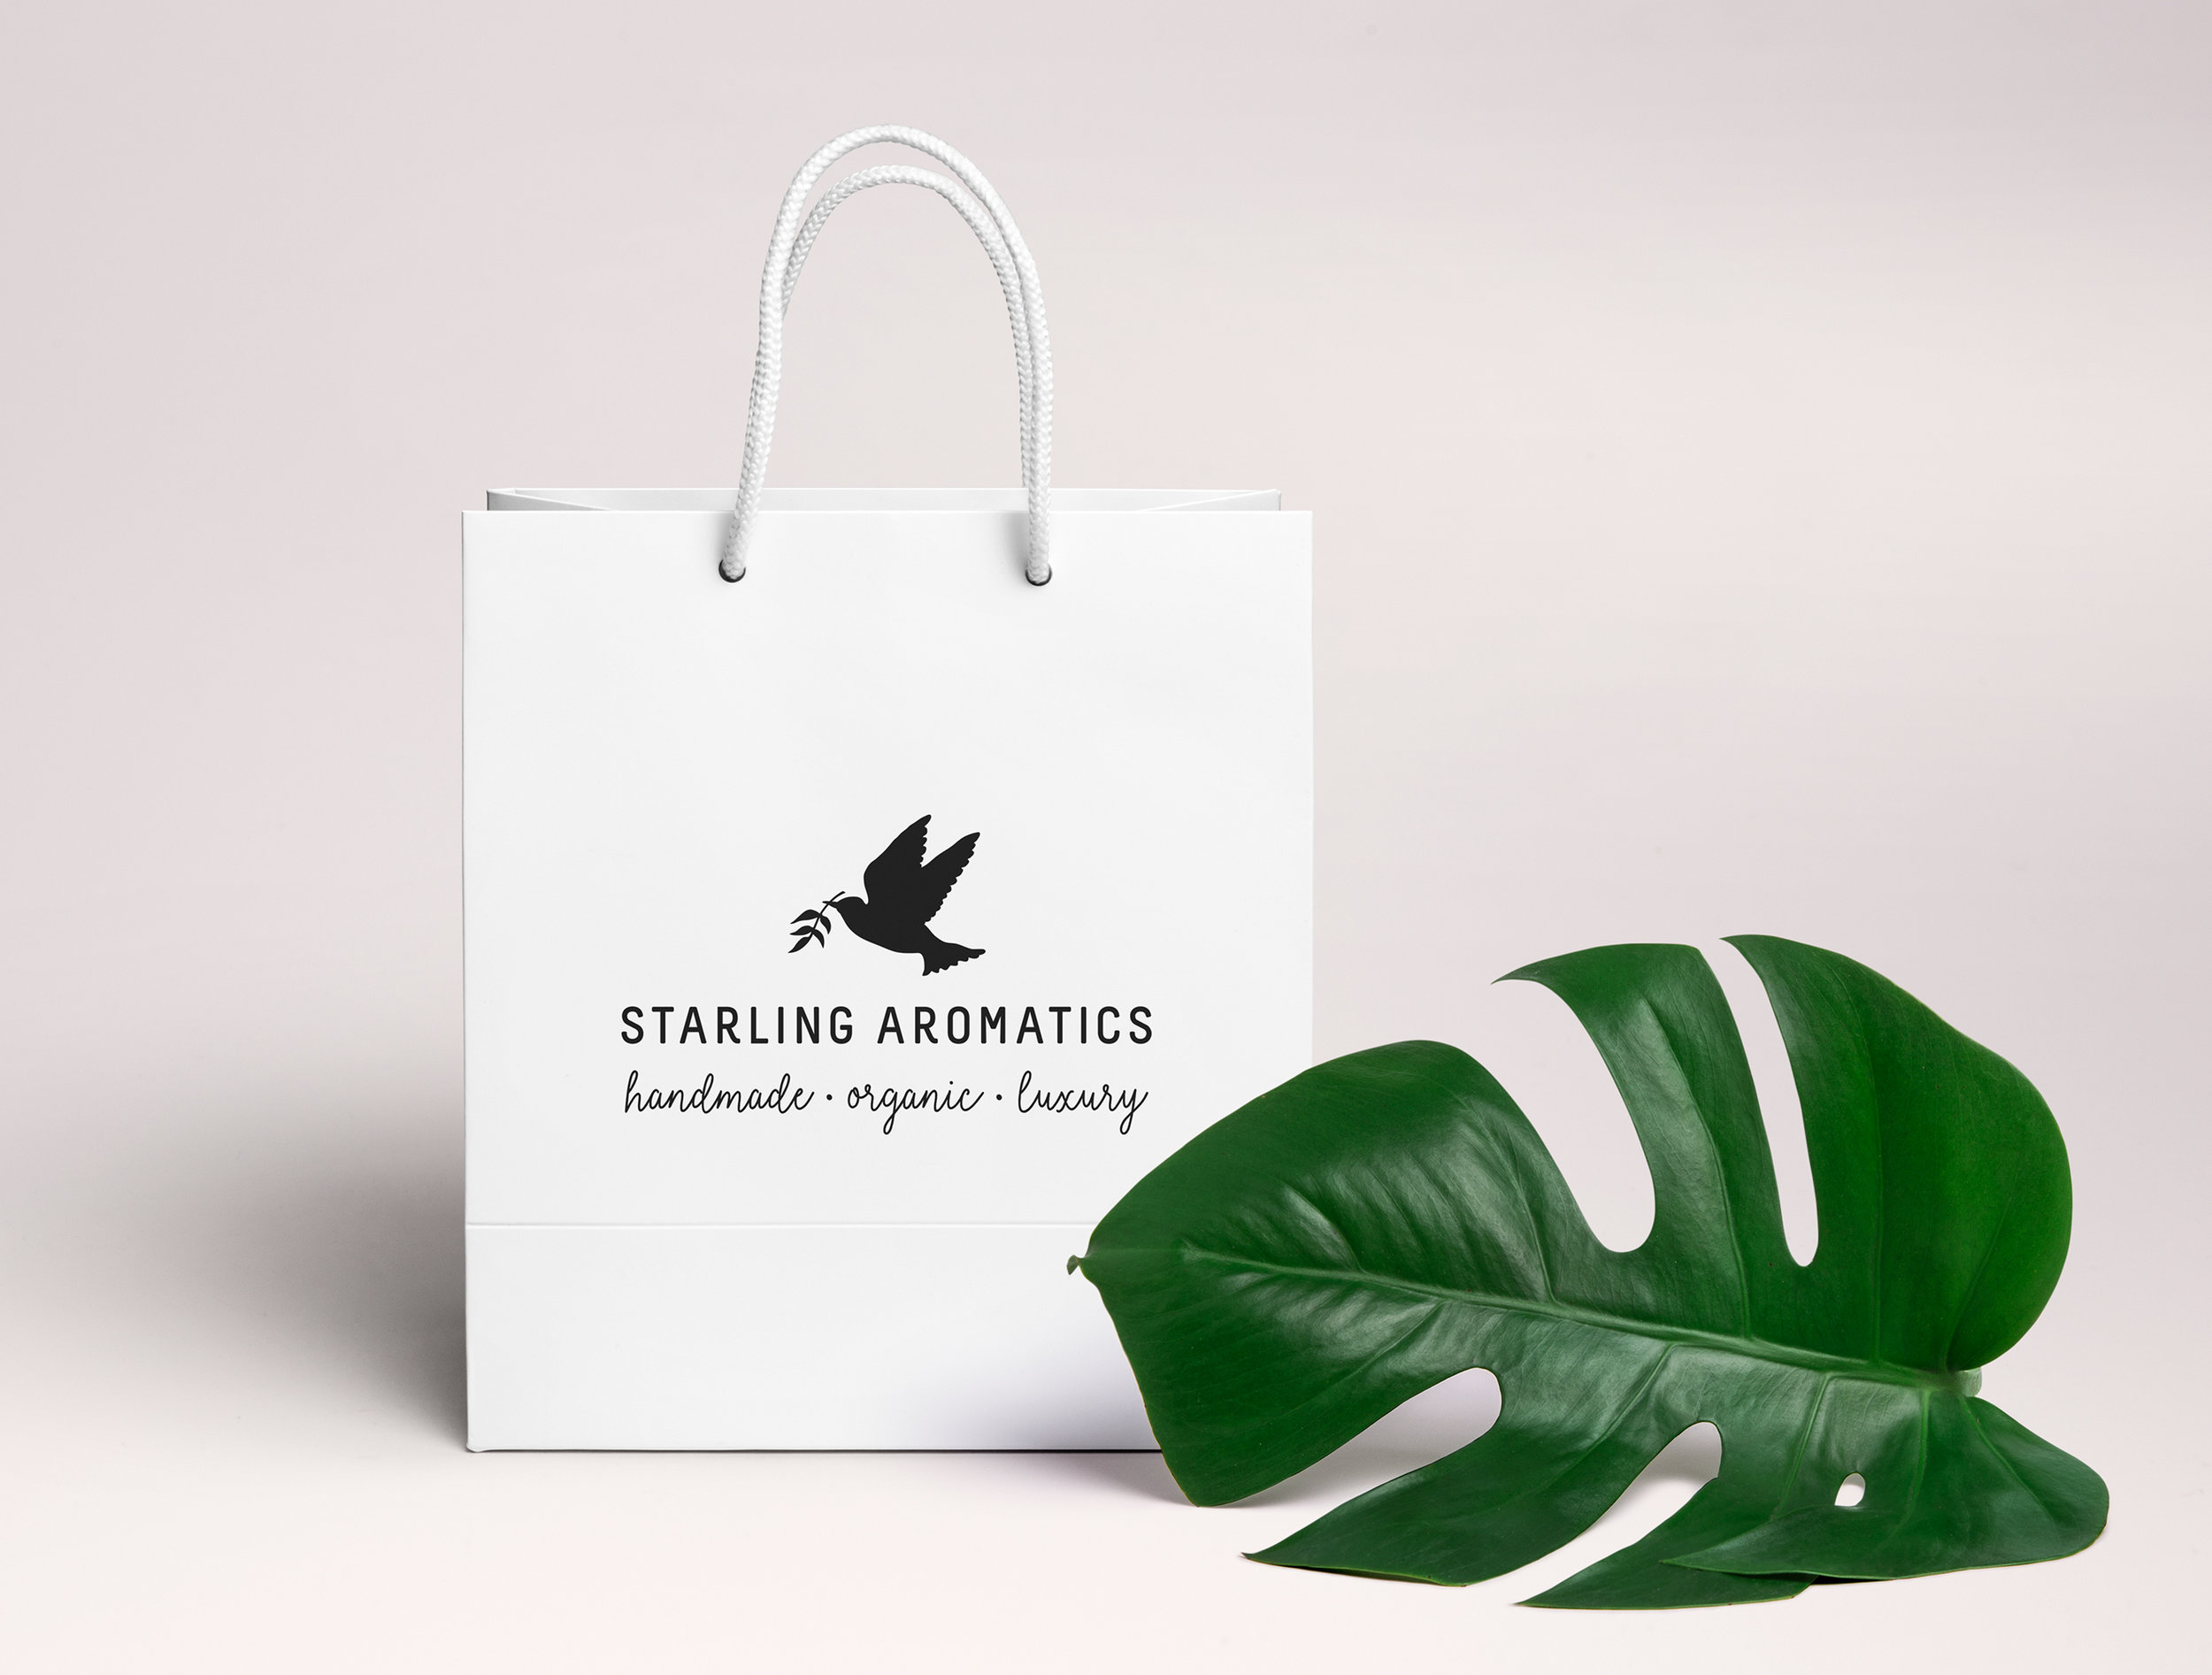 Starling Aromatics